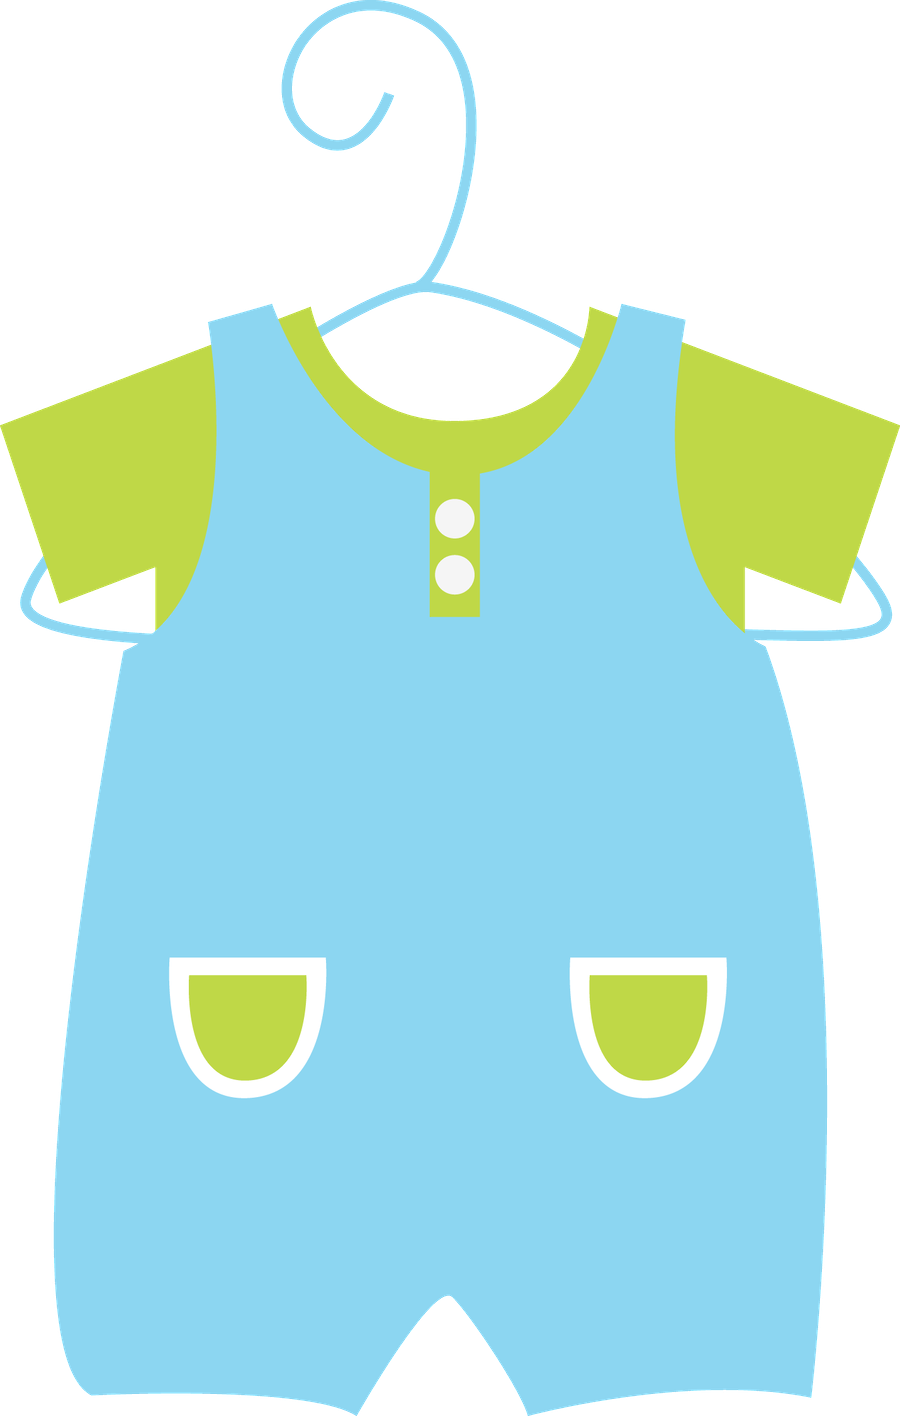 Baby Clothesline Clipart Free Download Best Baby